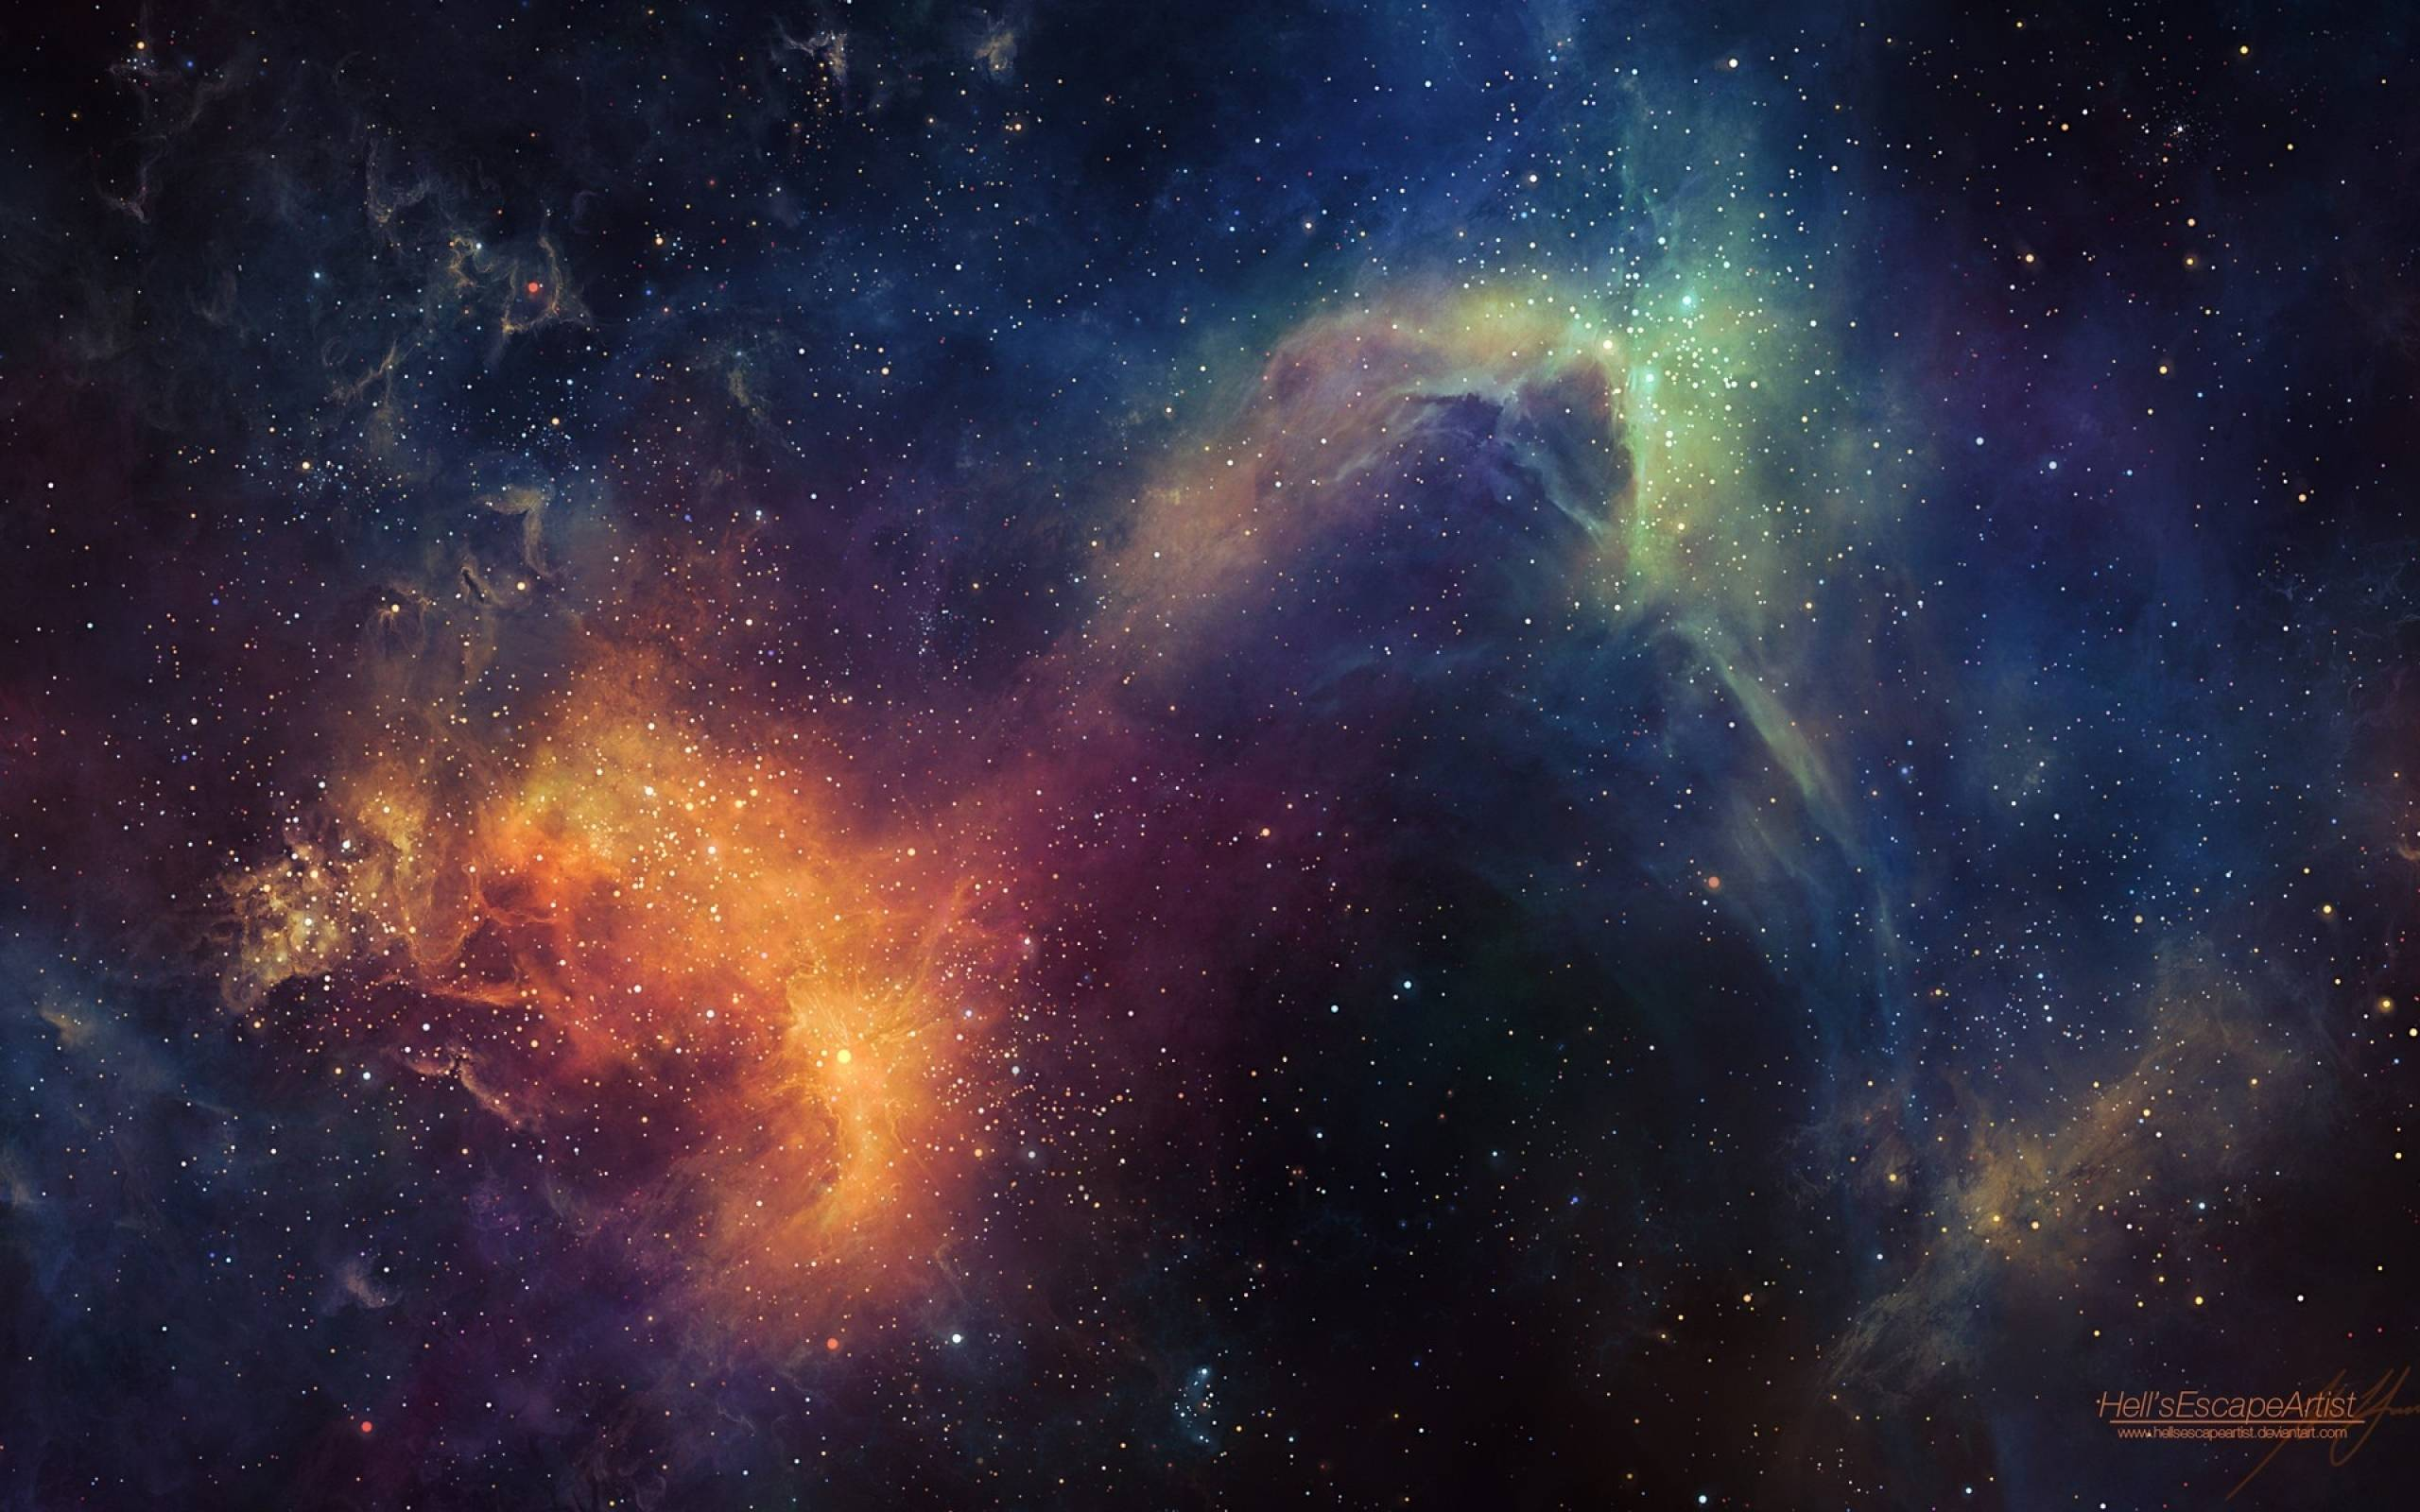 space wallpapers for desktop - photo #4